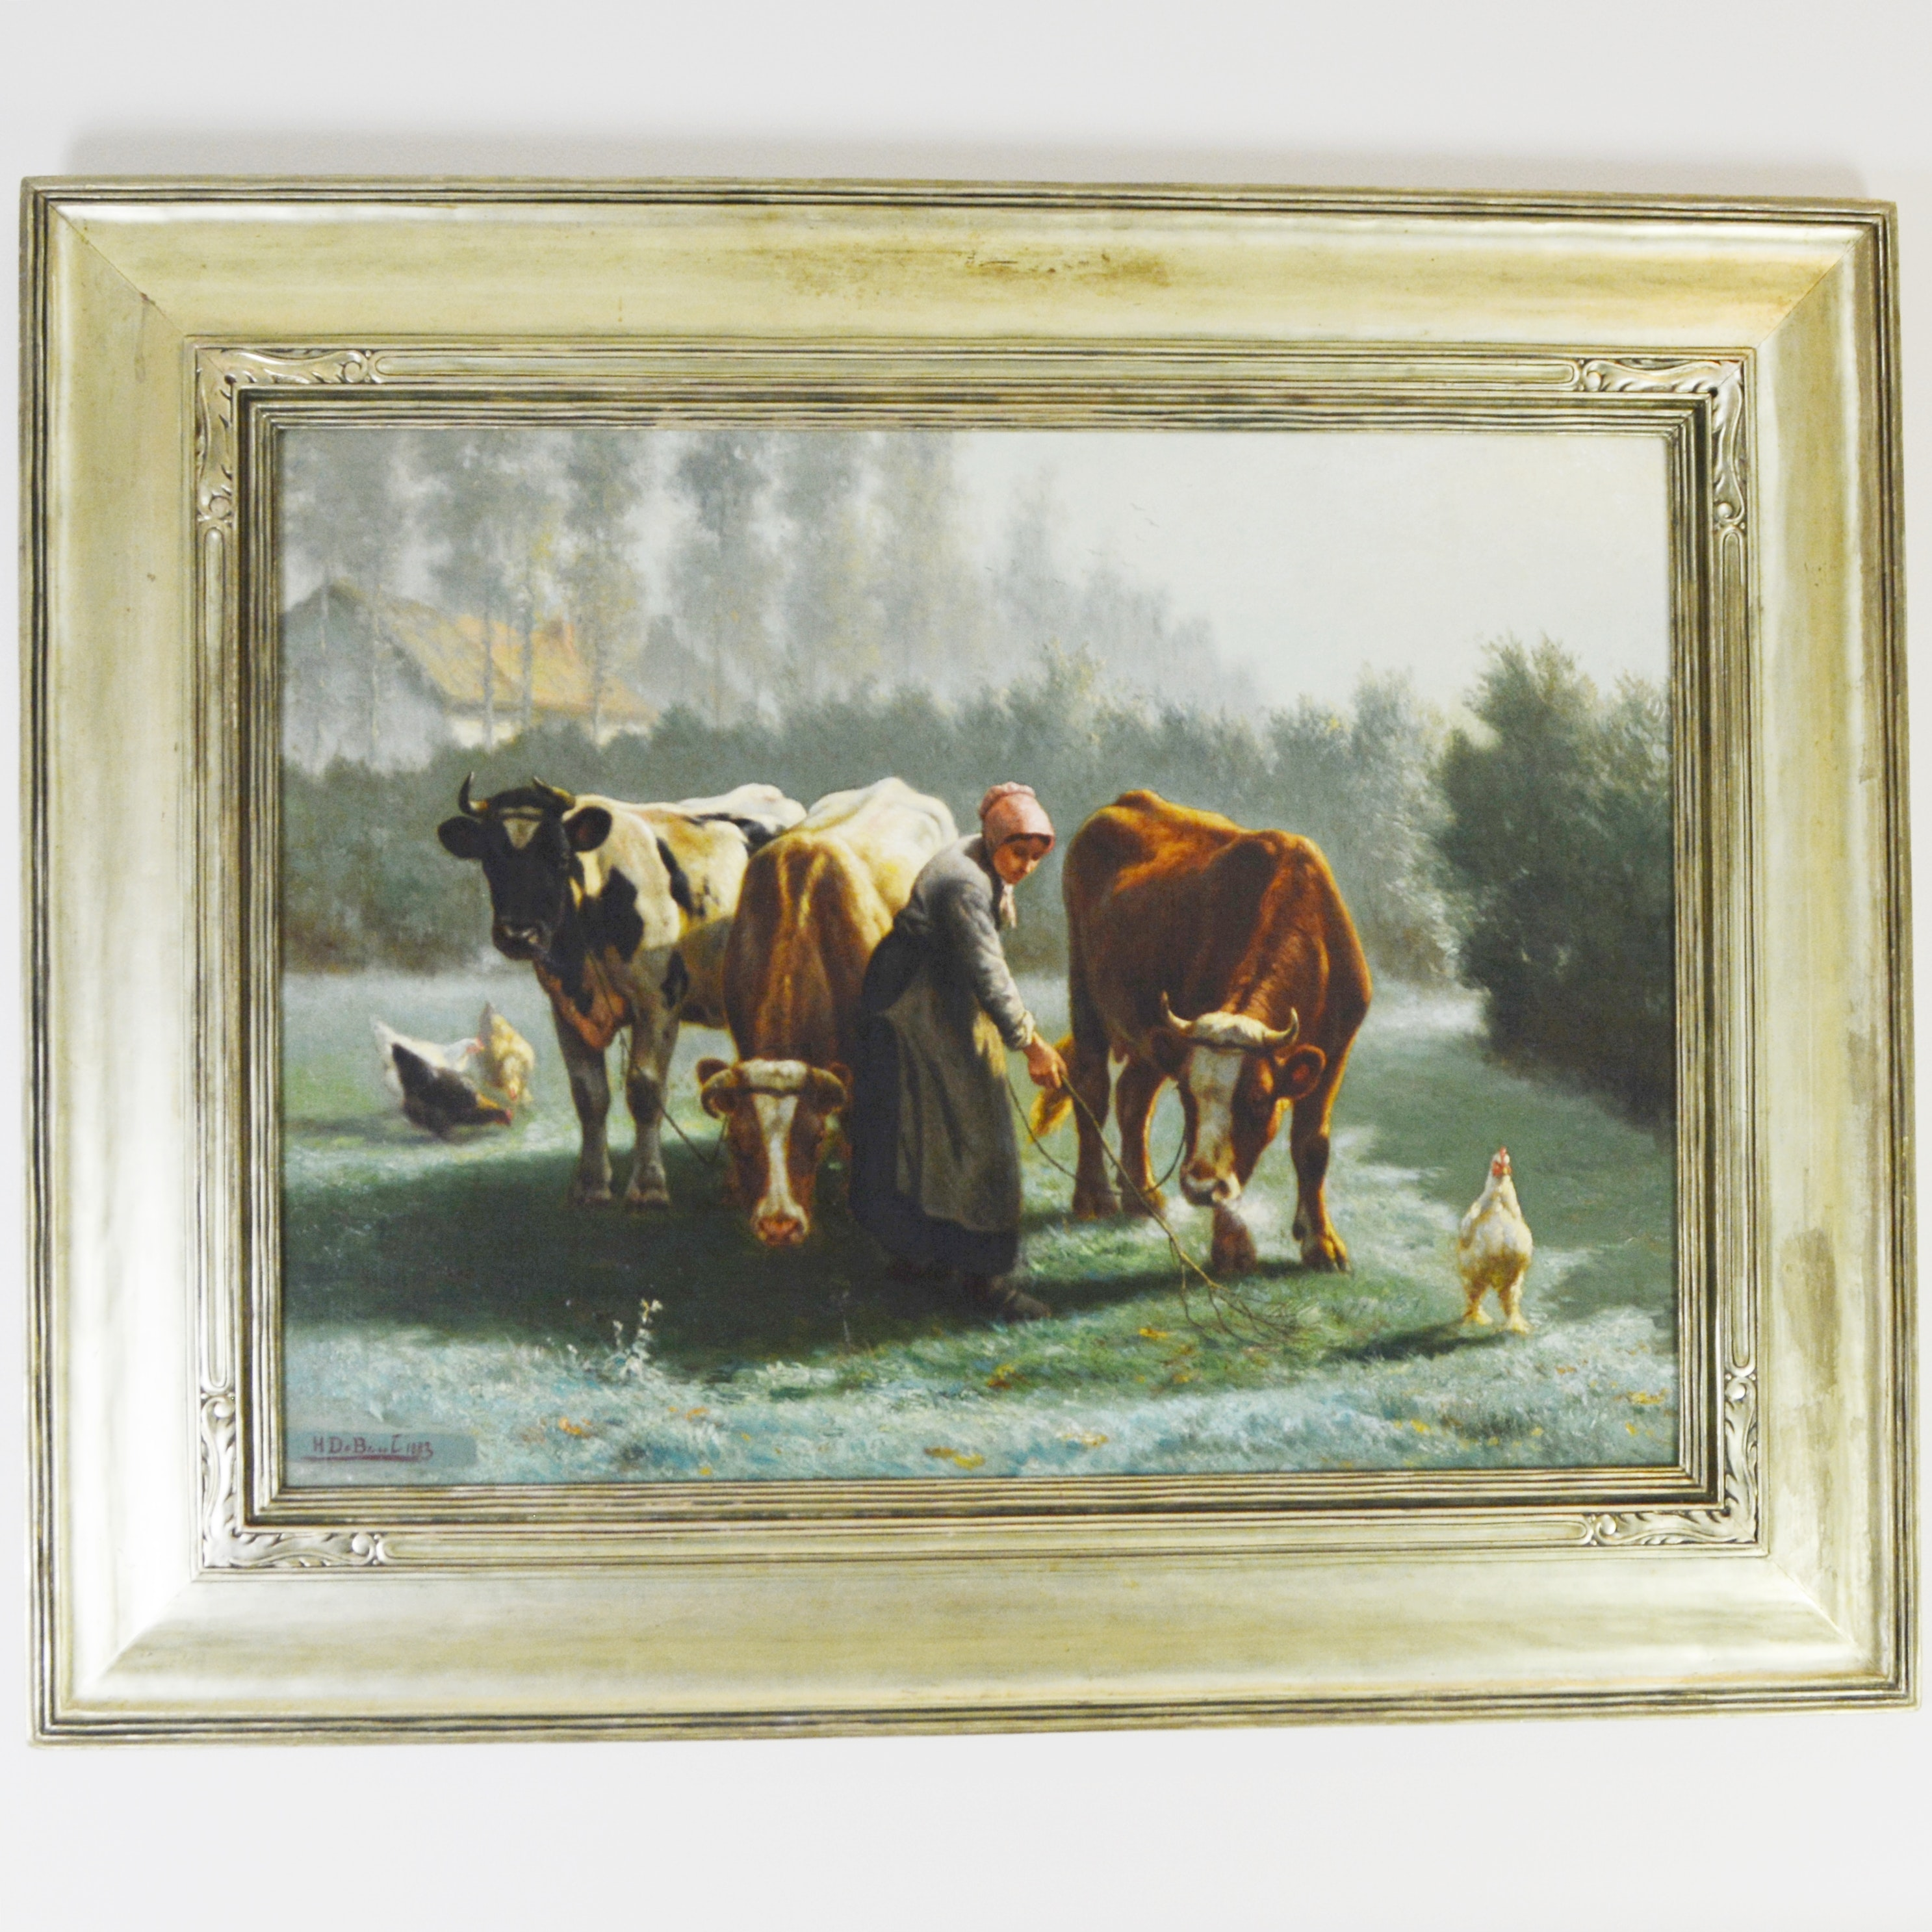 Henri De Beul Original Oil Painting of Pastoral Cow Scene